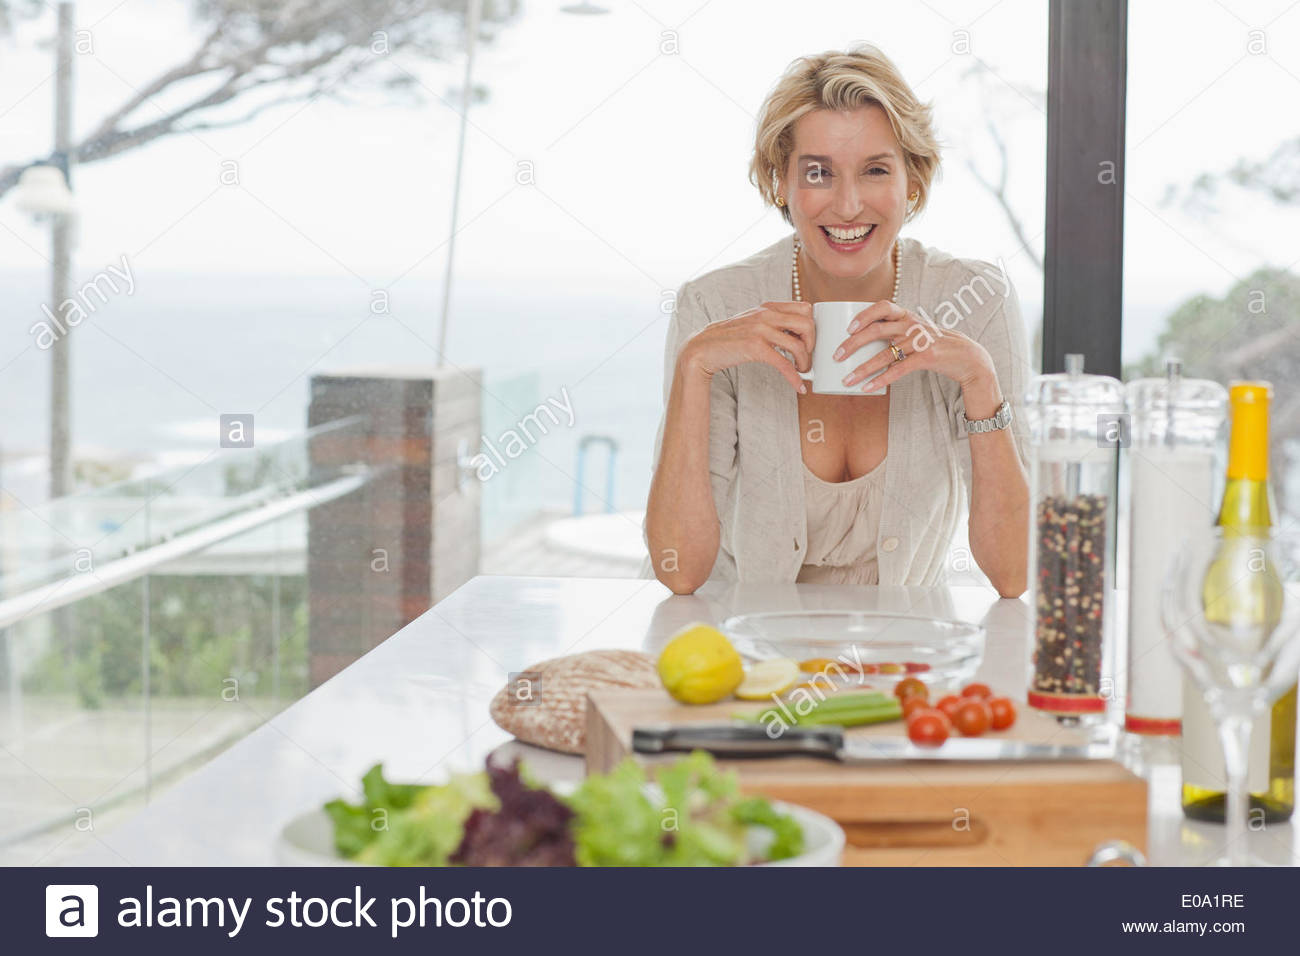 Woman drinking coffee in kitchen - Stock Image